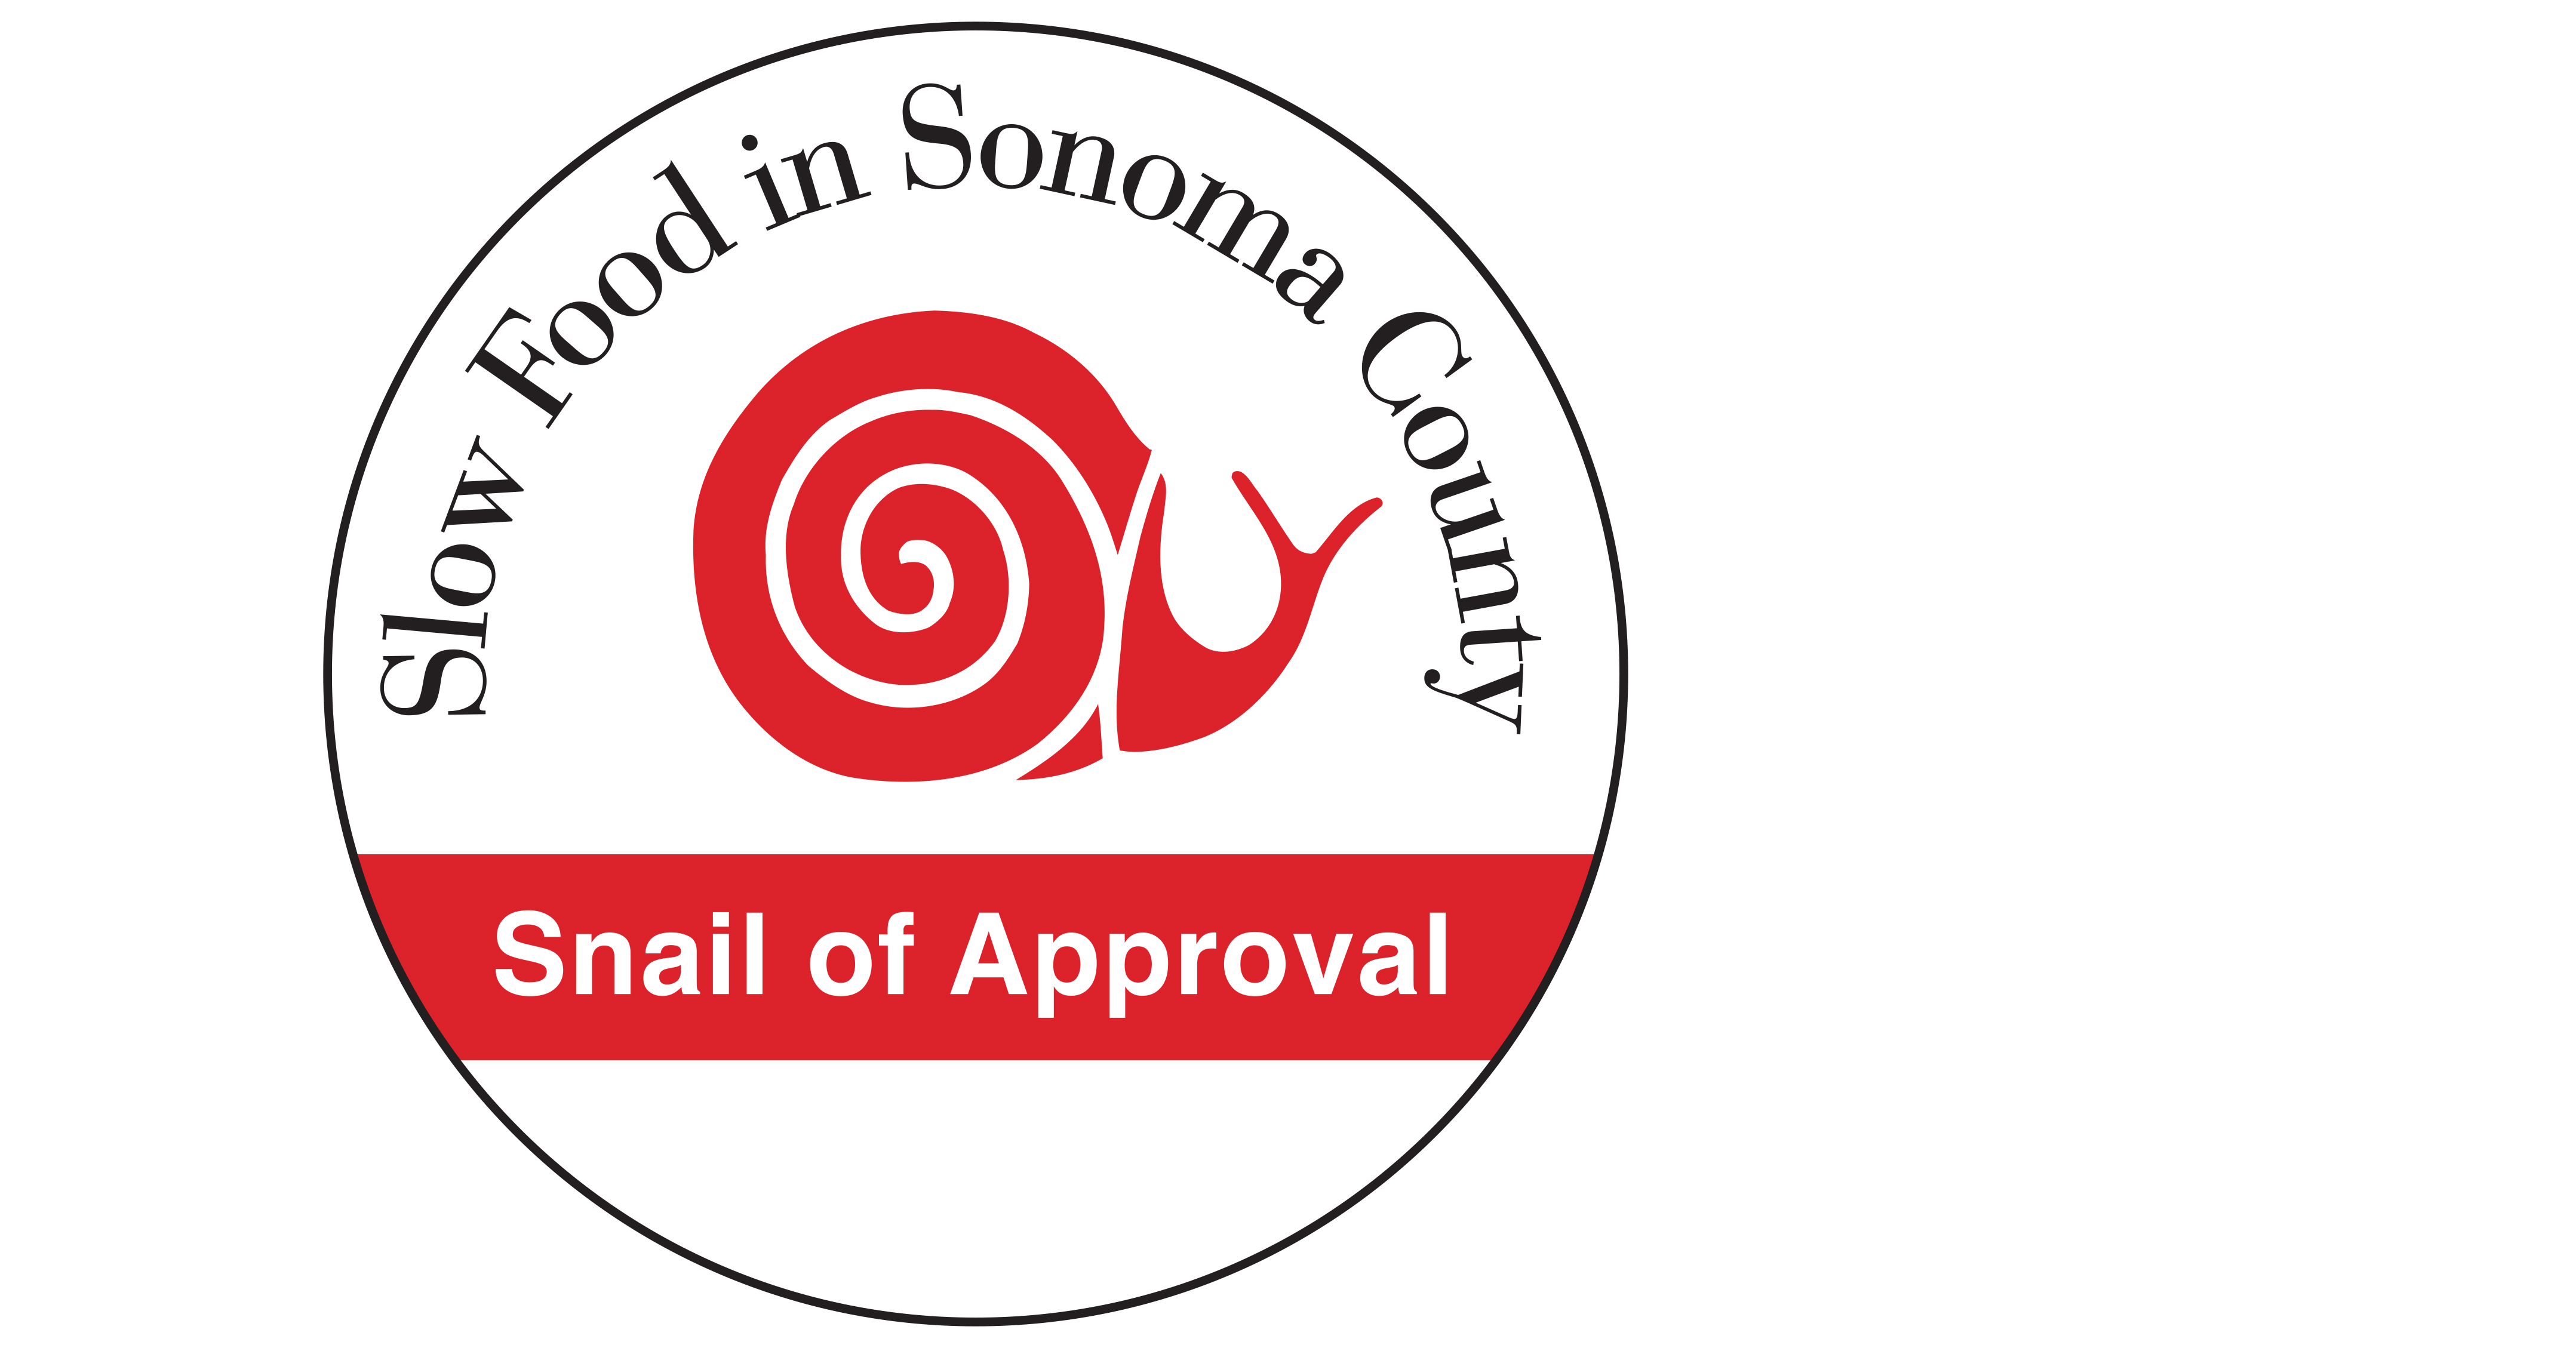 Snail of Approval – Slow Food in Sonoma County